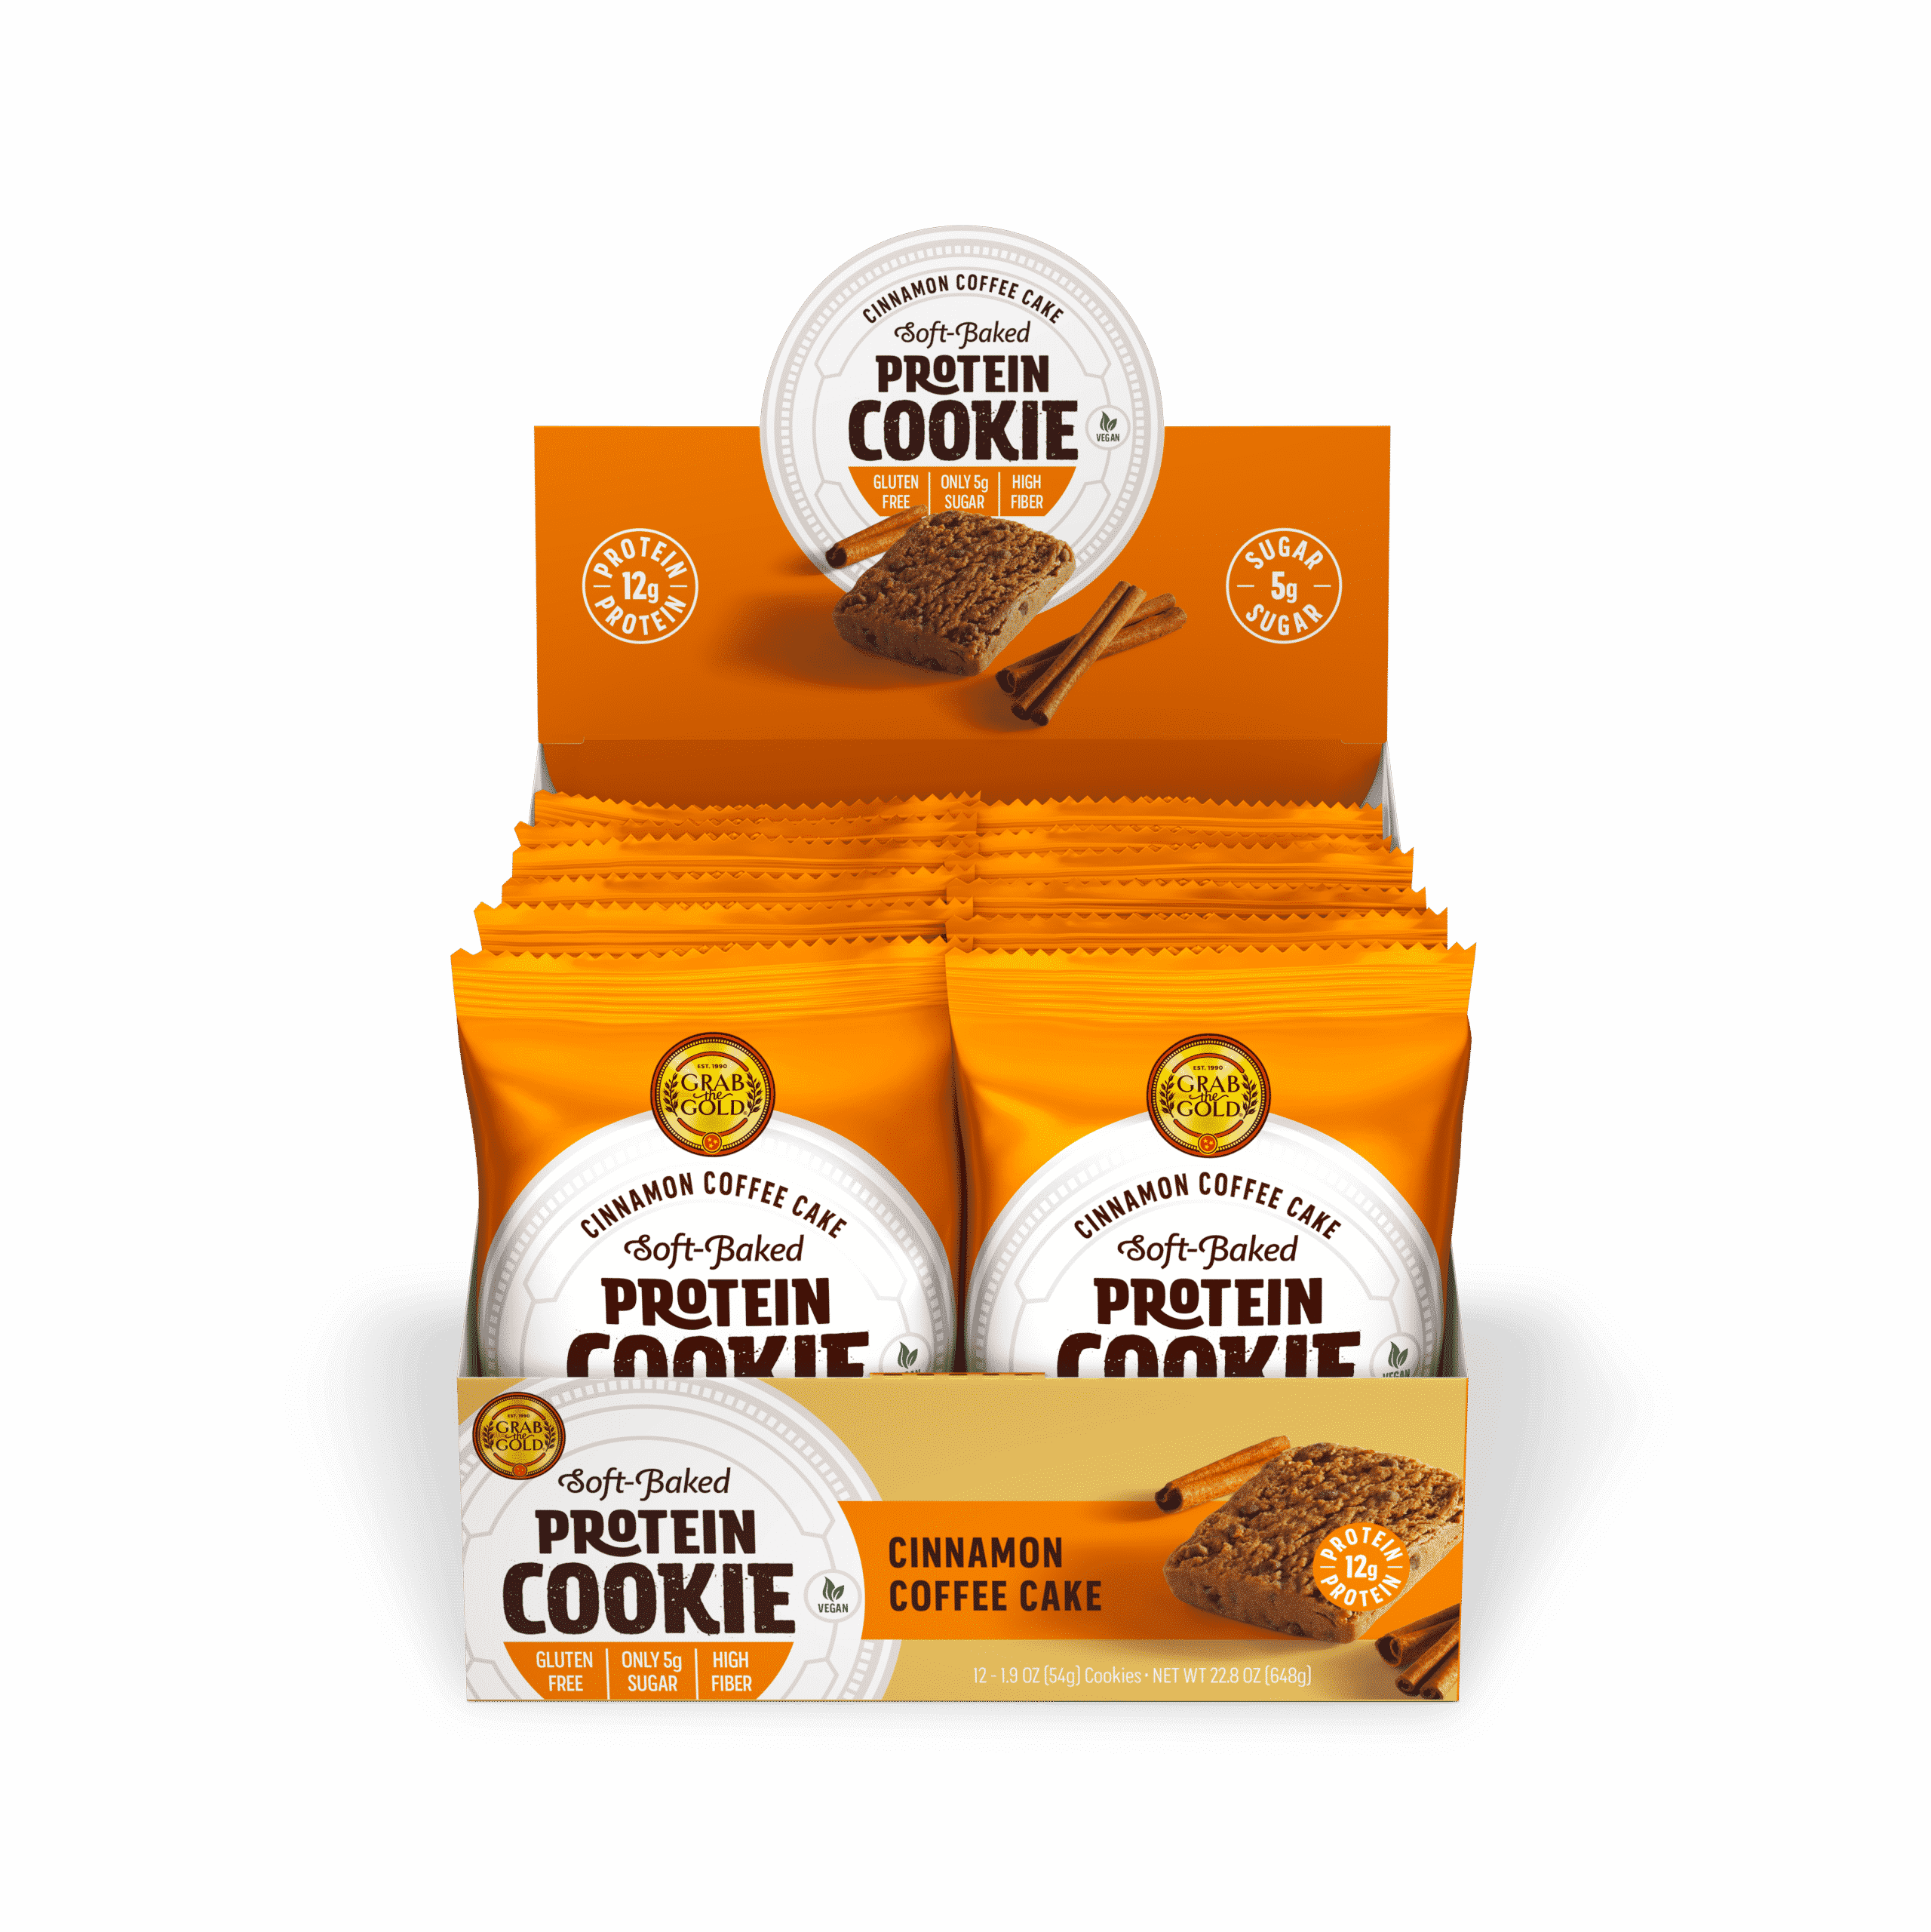 Grab The Gold Protein Cookie POS CCC Open Box 08.20